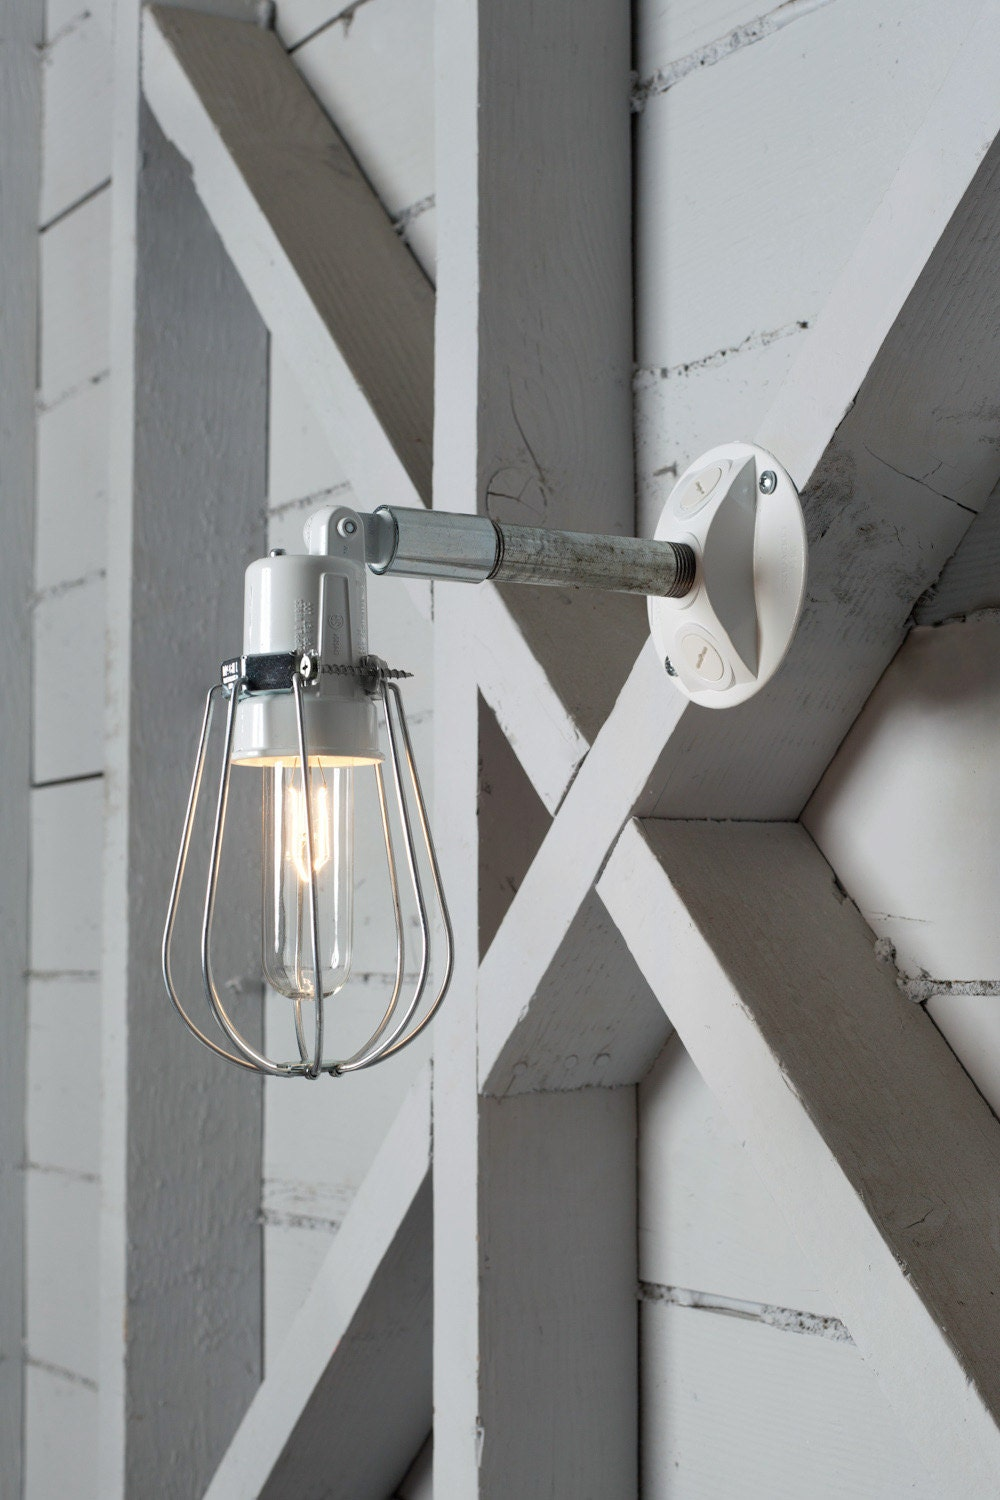 Outdoor wall light exterior wire cage wall sconce lamp for Exterior light sconce